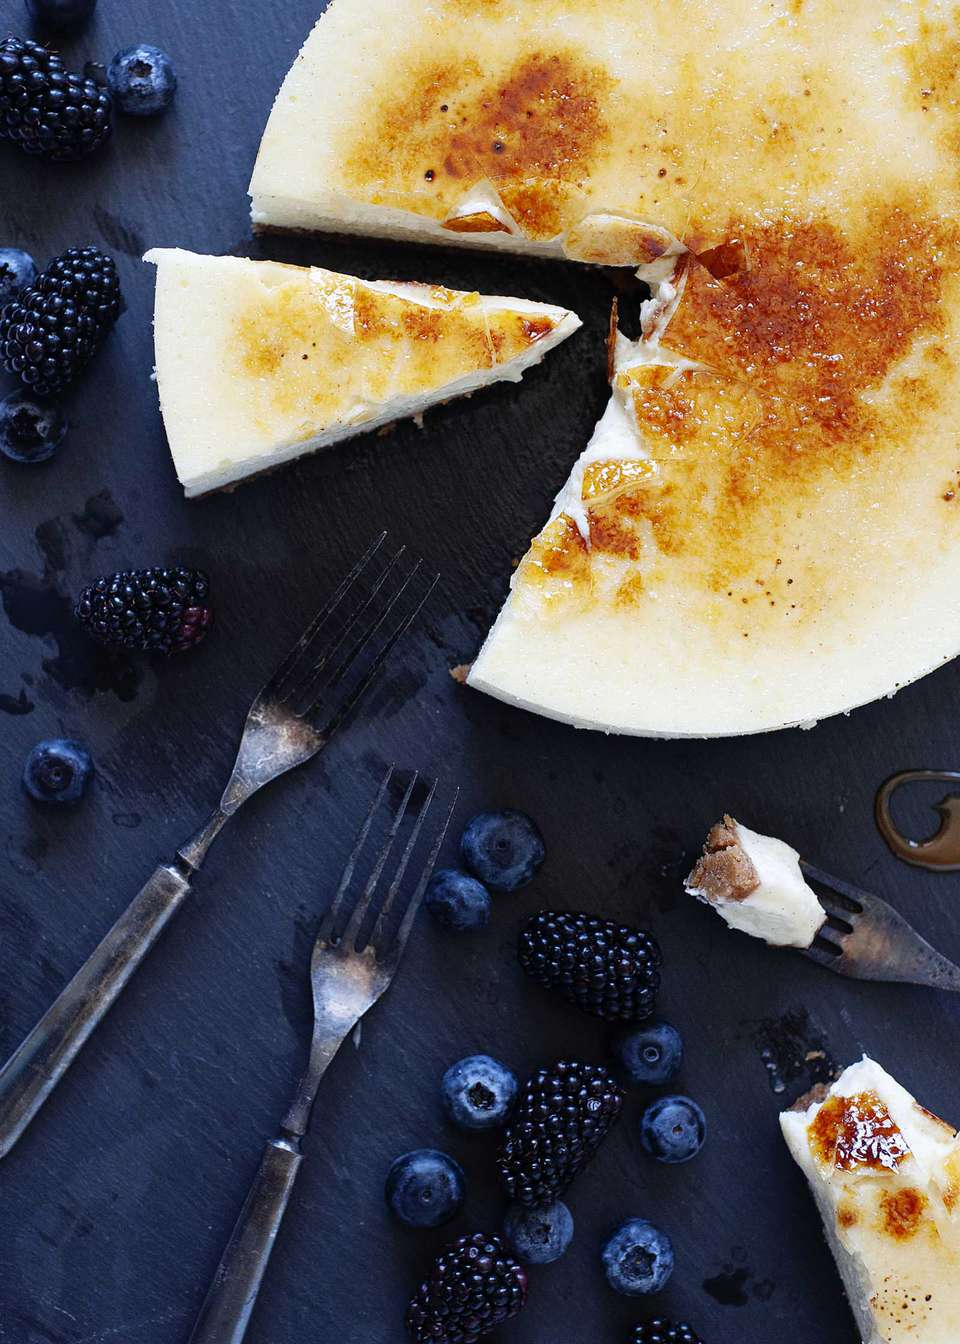 Vanilla Bean Cheesecake with brittle sugar topping on a slate board wtih a slice cut out and fruit and forks nearby.